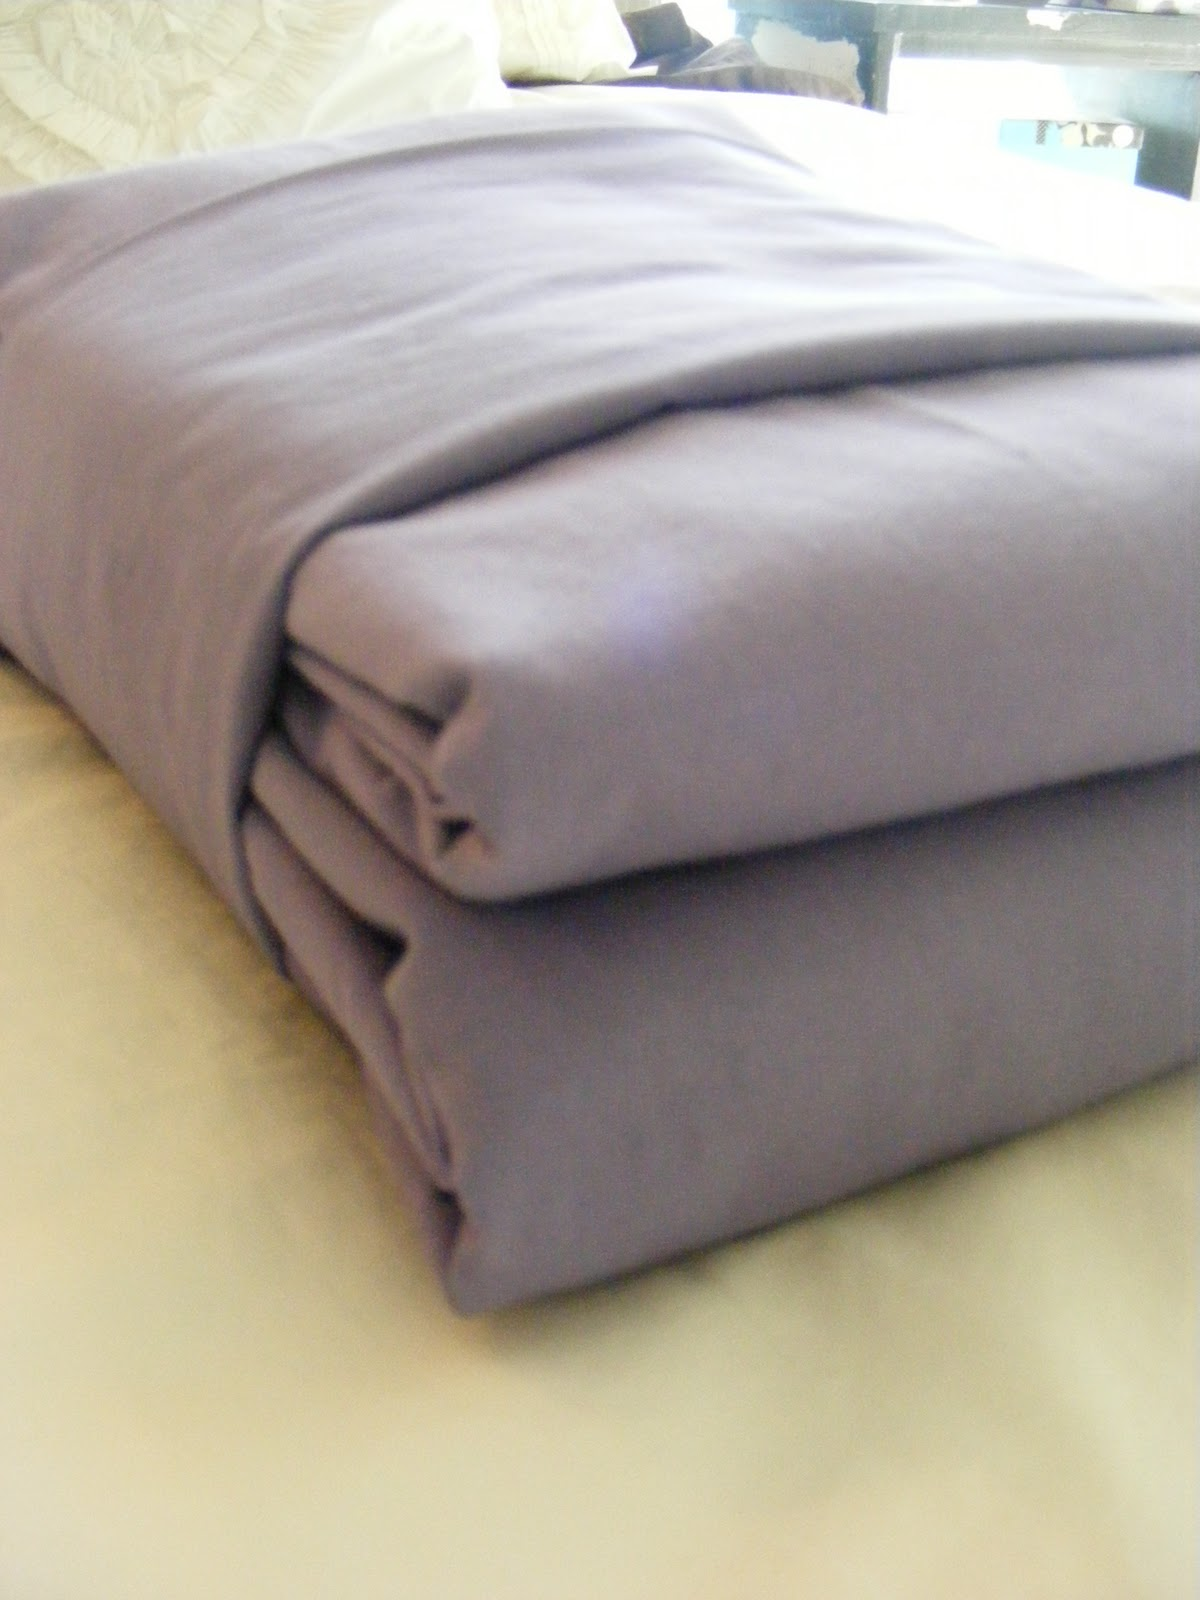 4 Ways To Fold Bedsheets